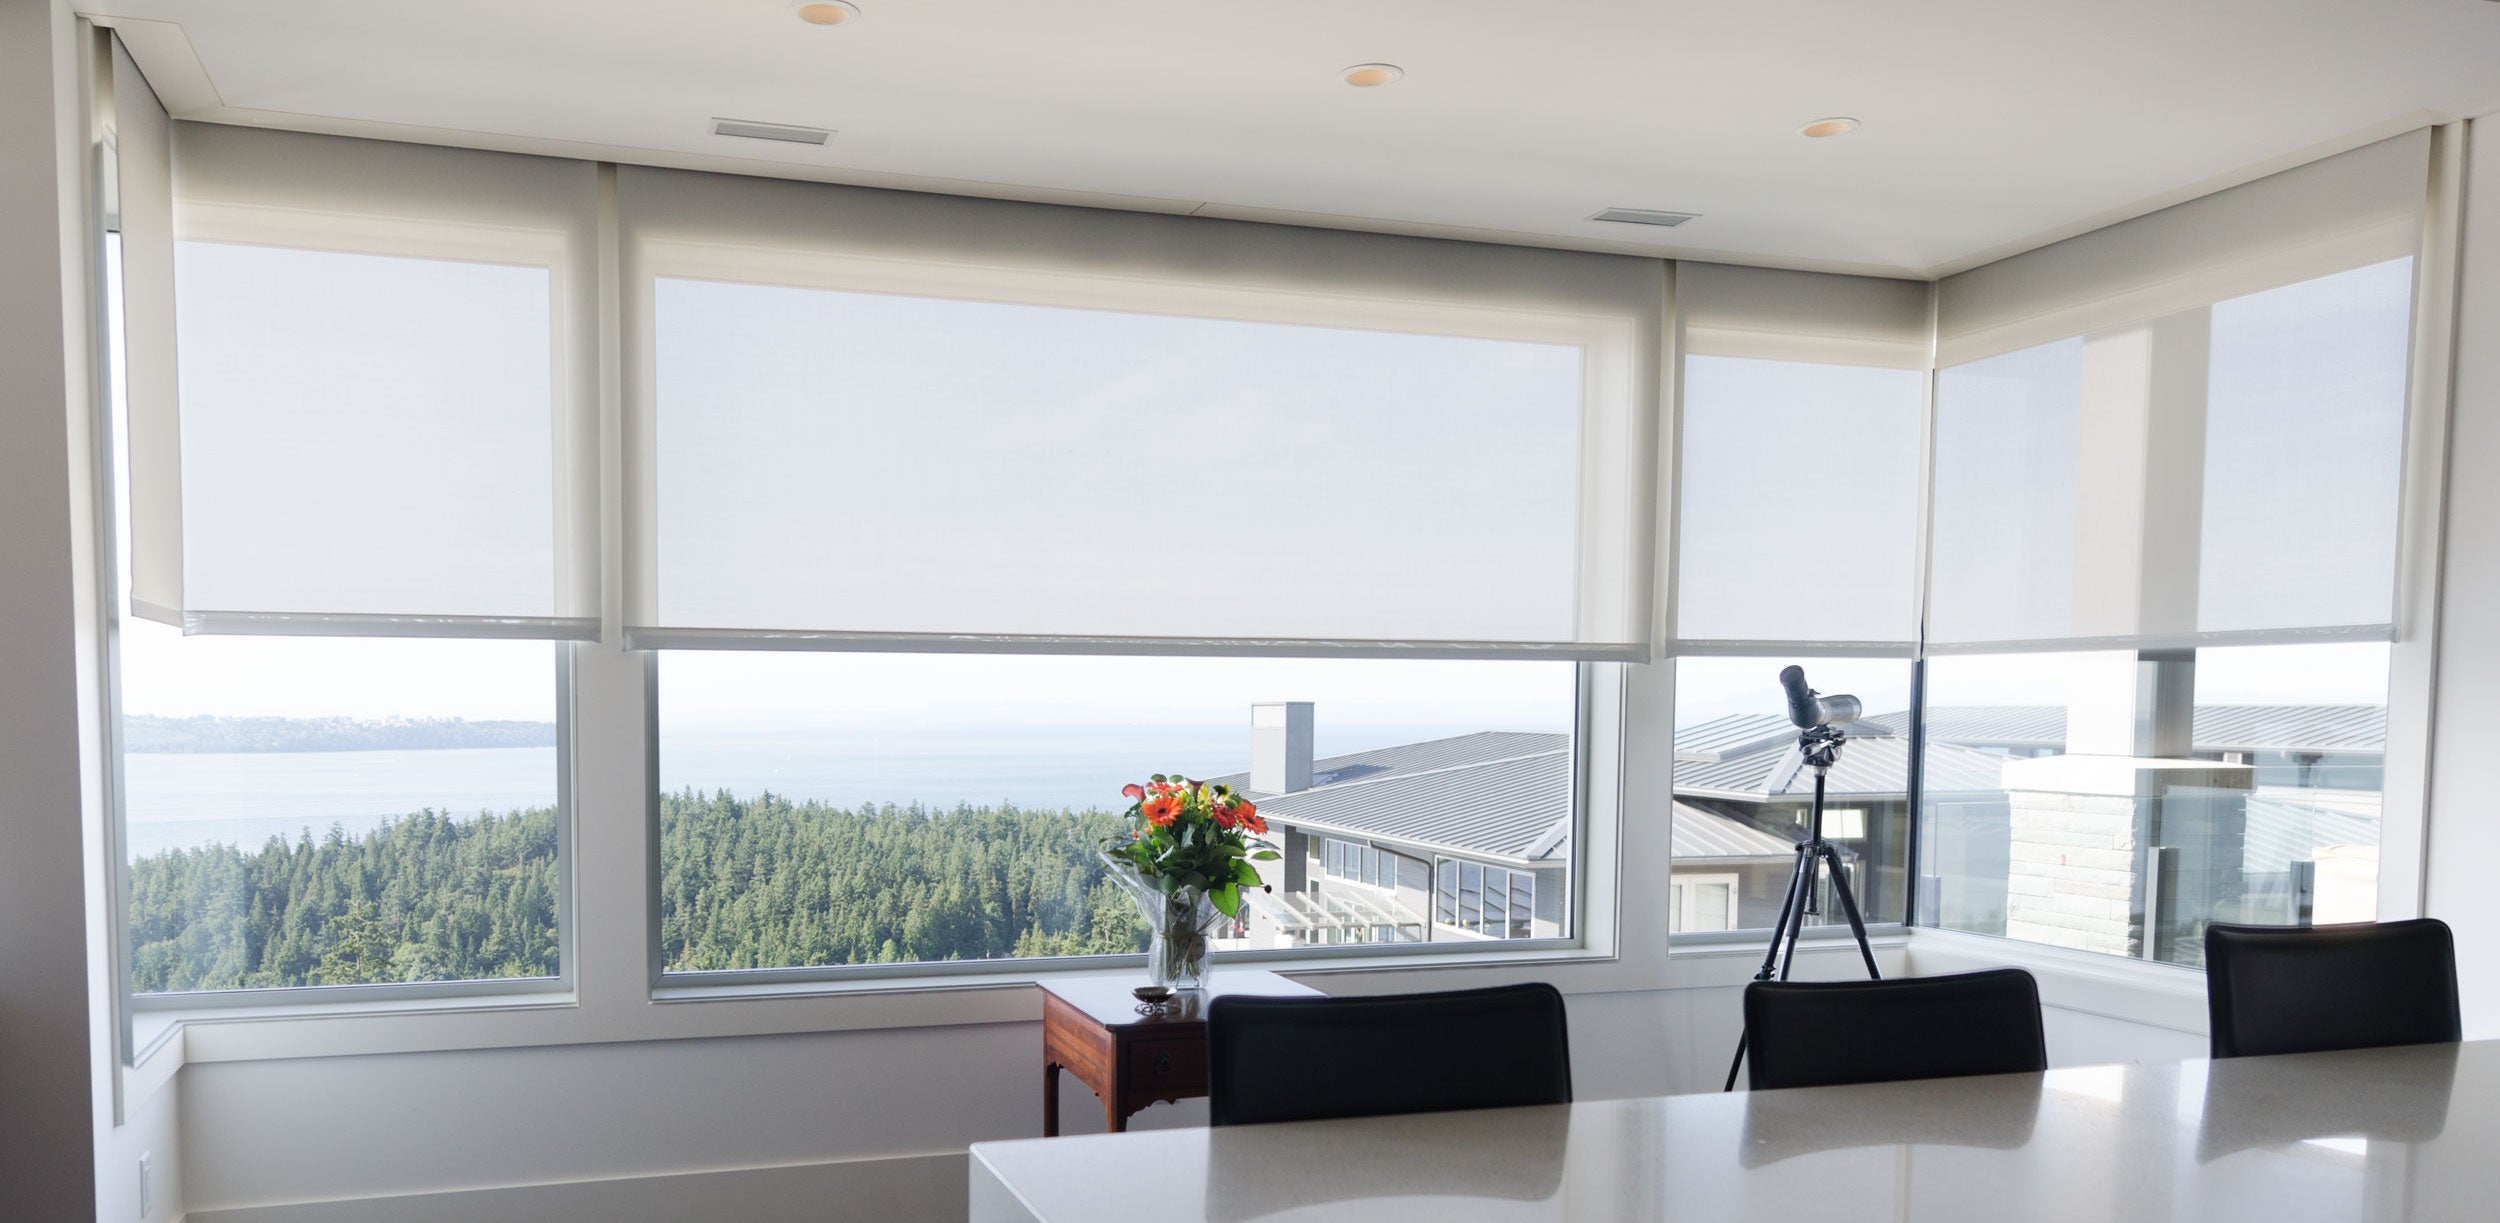 living room with blinds smart window appeal home uk shading fern redcurrant control